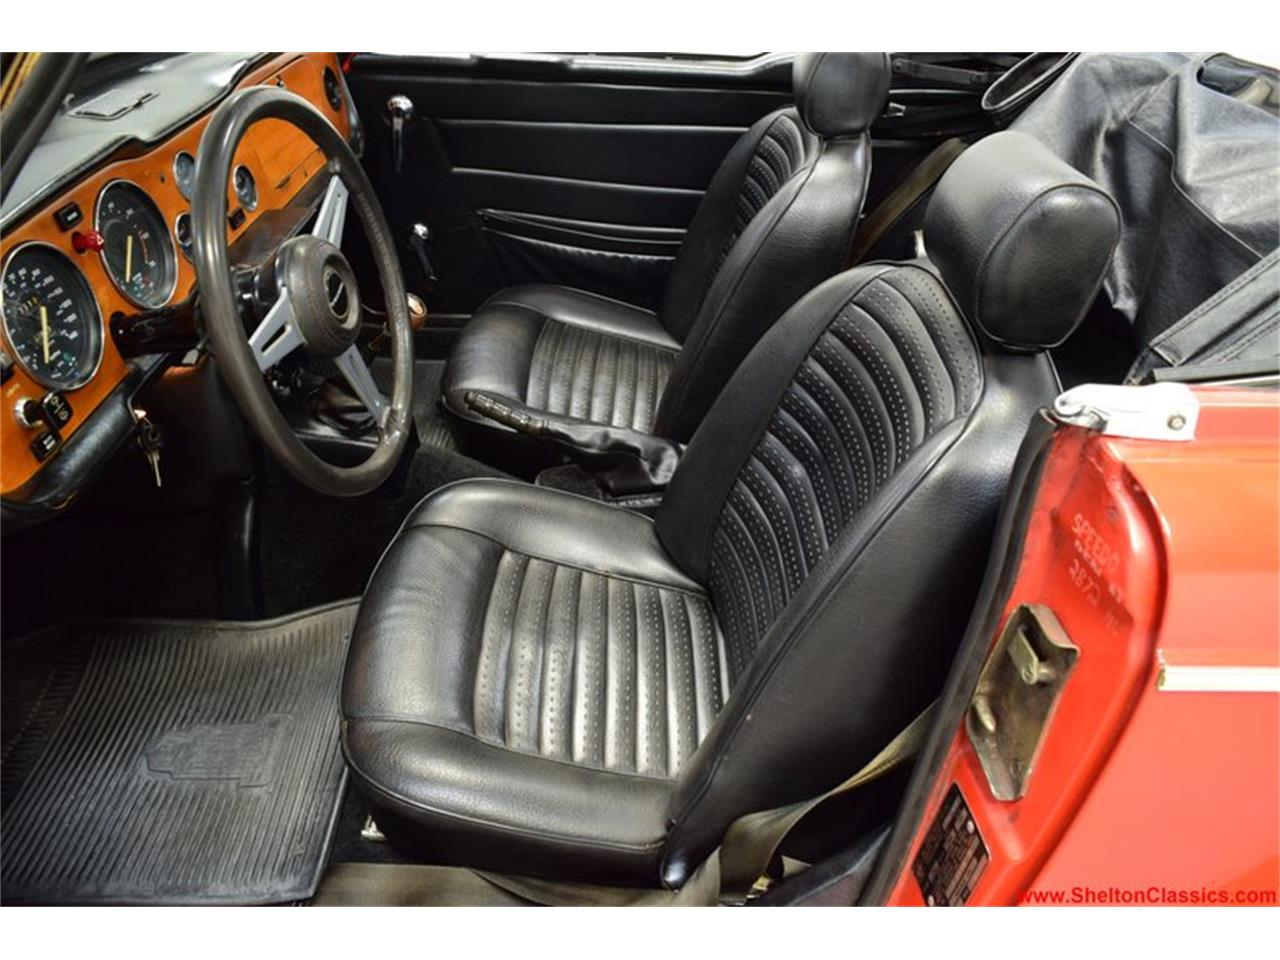 Large Picture of Classic '73 TR6 located in North Carolina - $16,995.00 - QGZ7